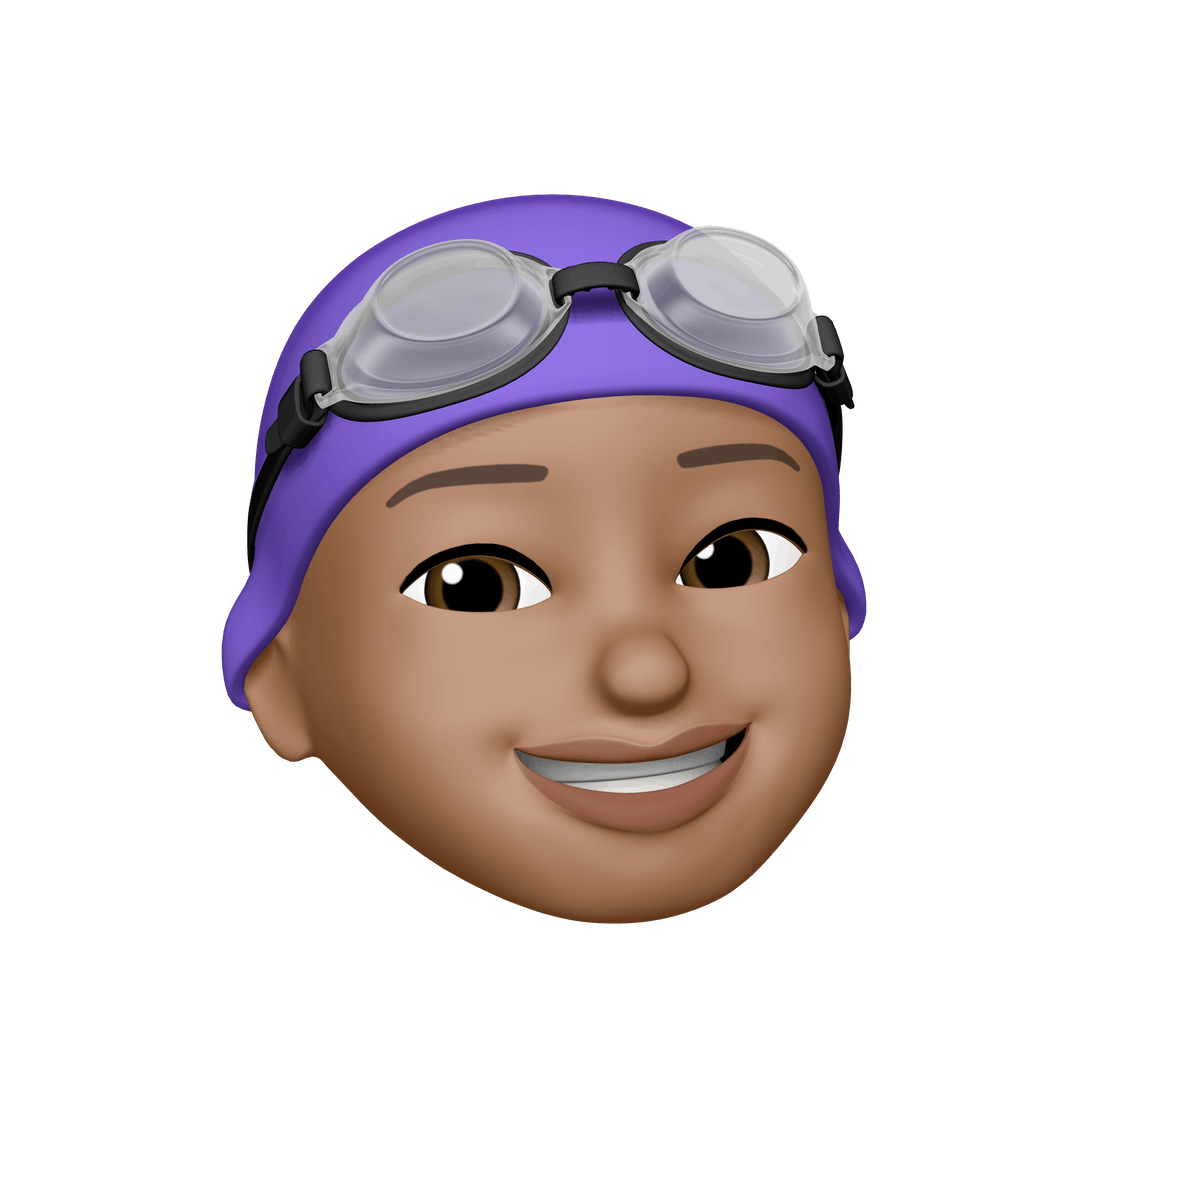 Apple's new emojis and Memojis for iOS 14 include so many new choices.